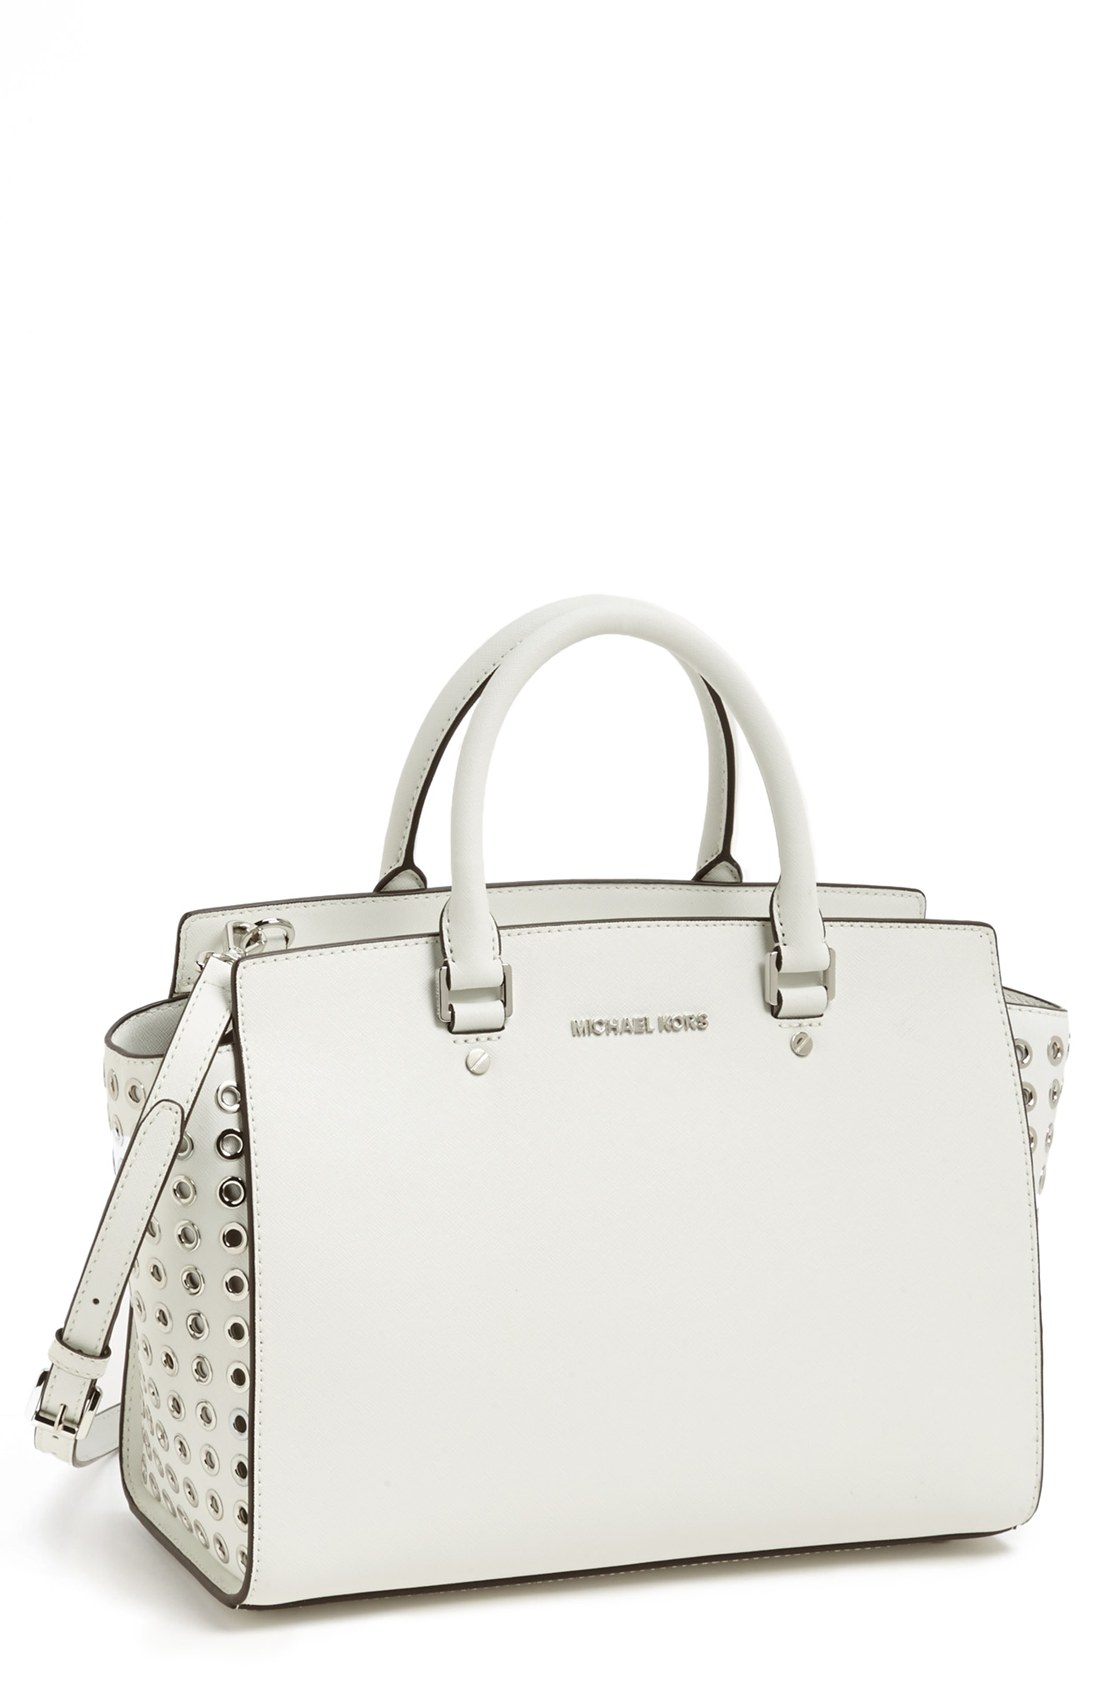 michael michael kors selma large leather satchel in white optic white. Black Bedroom Furniture Sets. Home Design Ideas